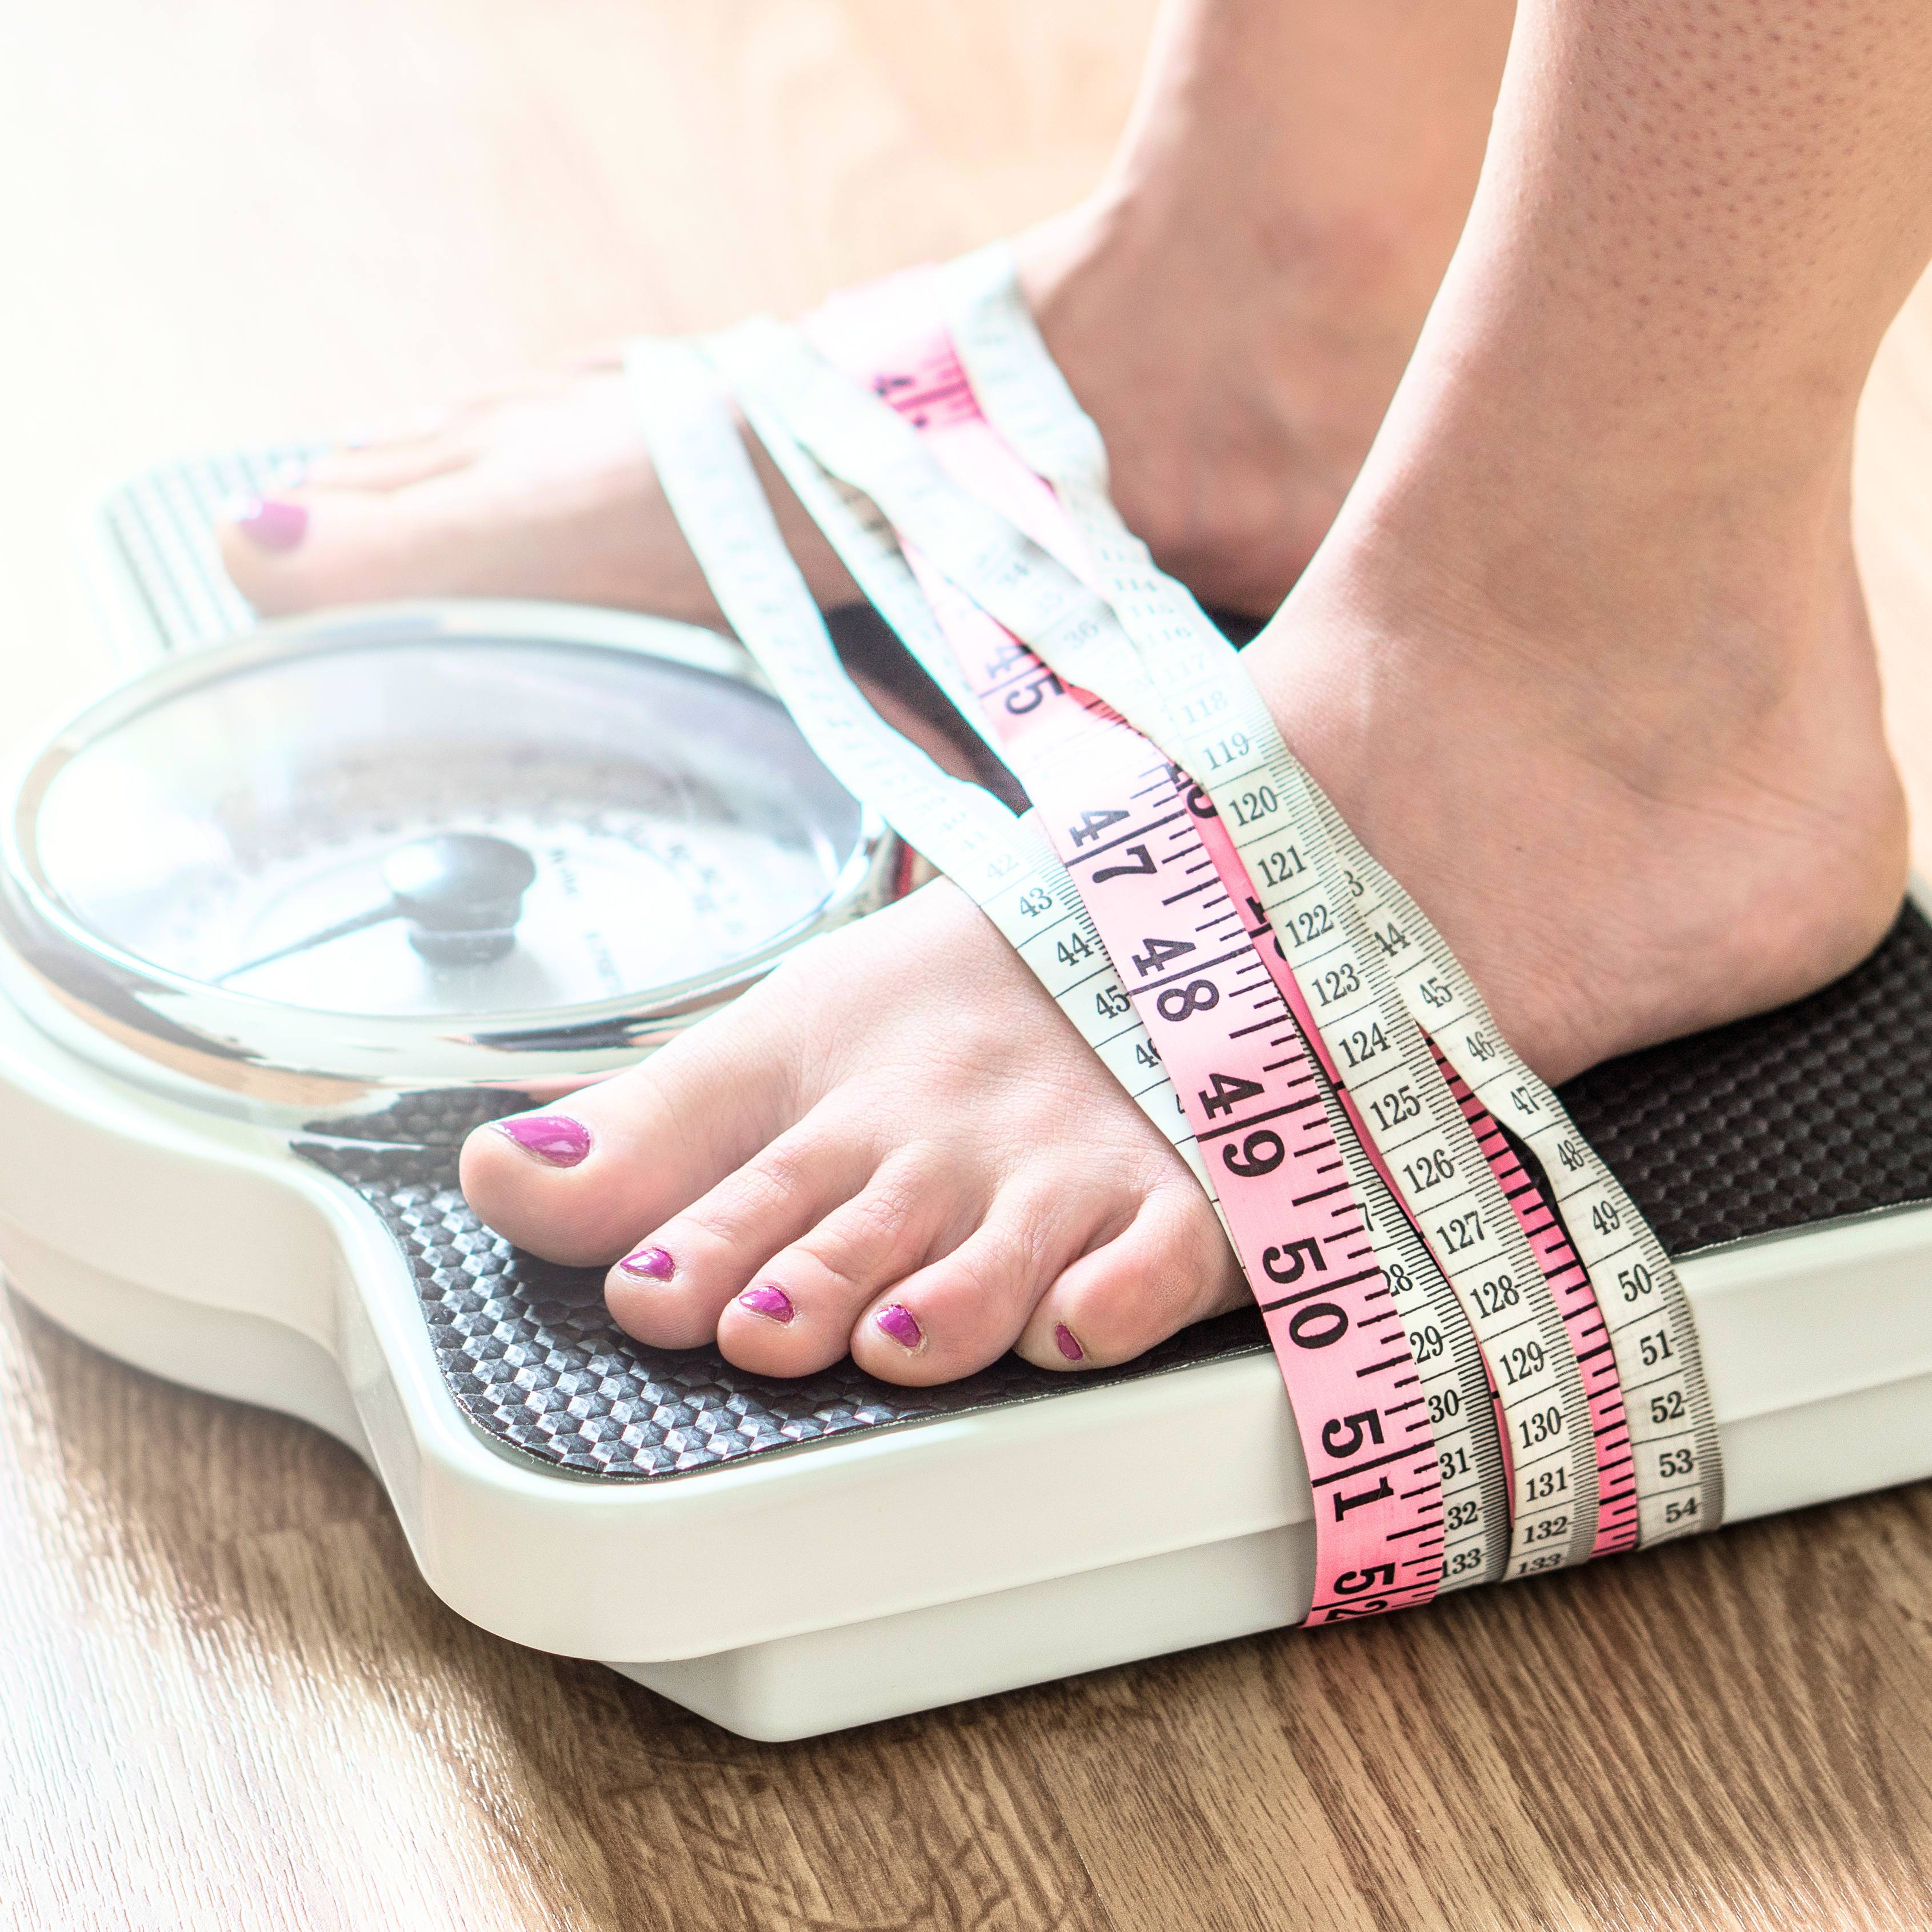 a woman standing on a scale to weigh herself and measuring tapes are wrapped around her feet and the scale